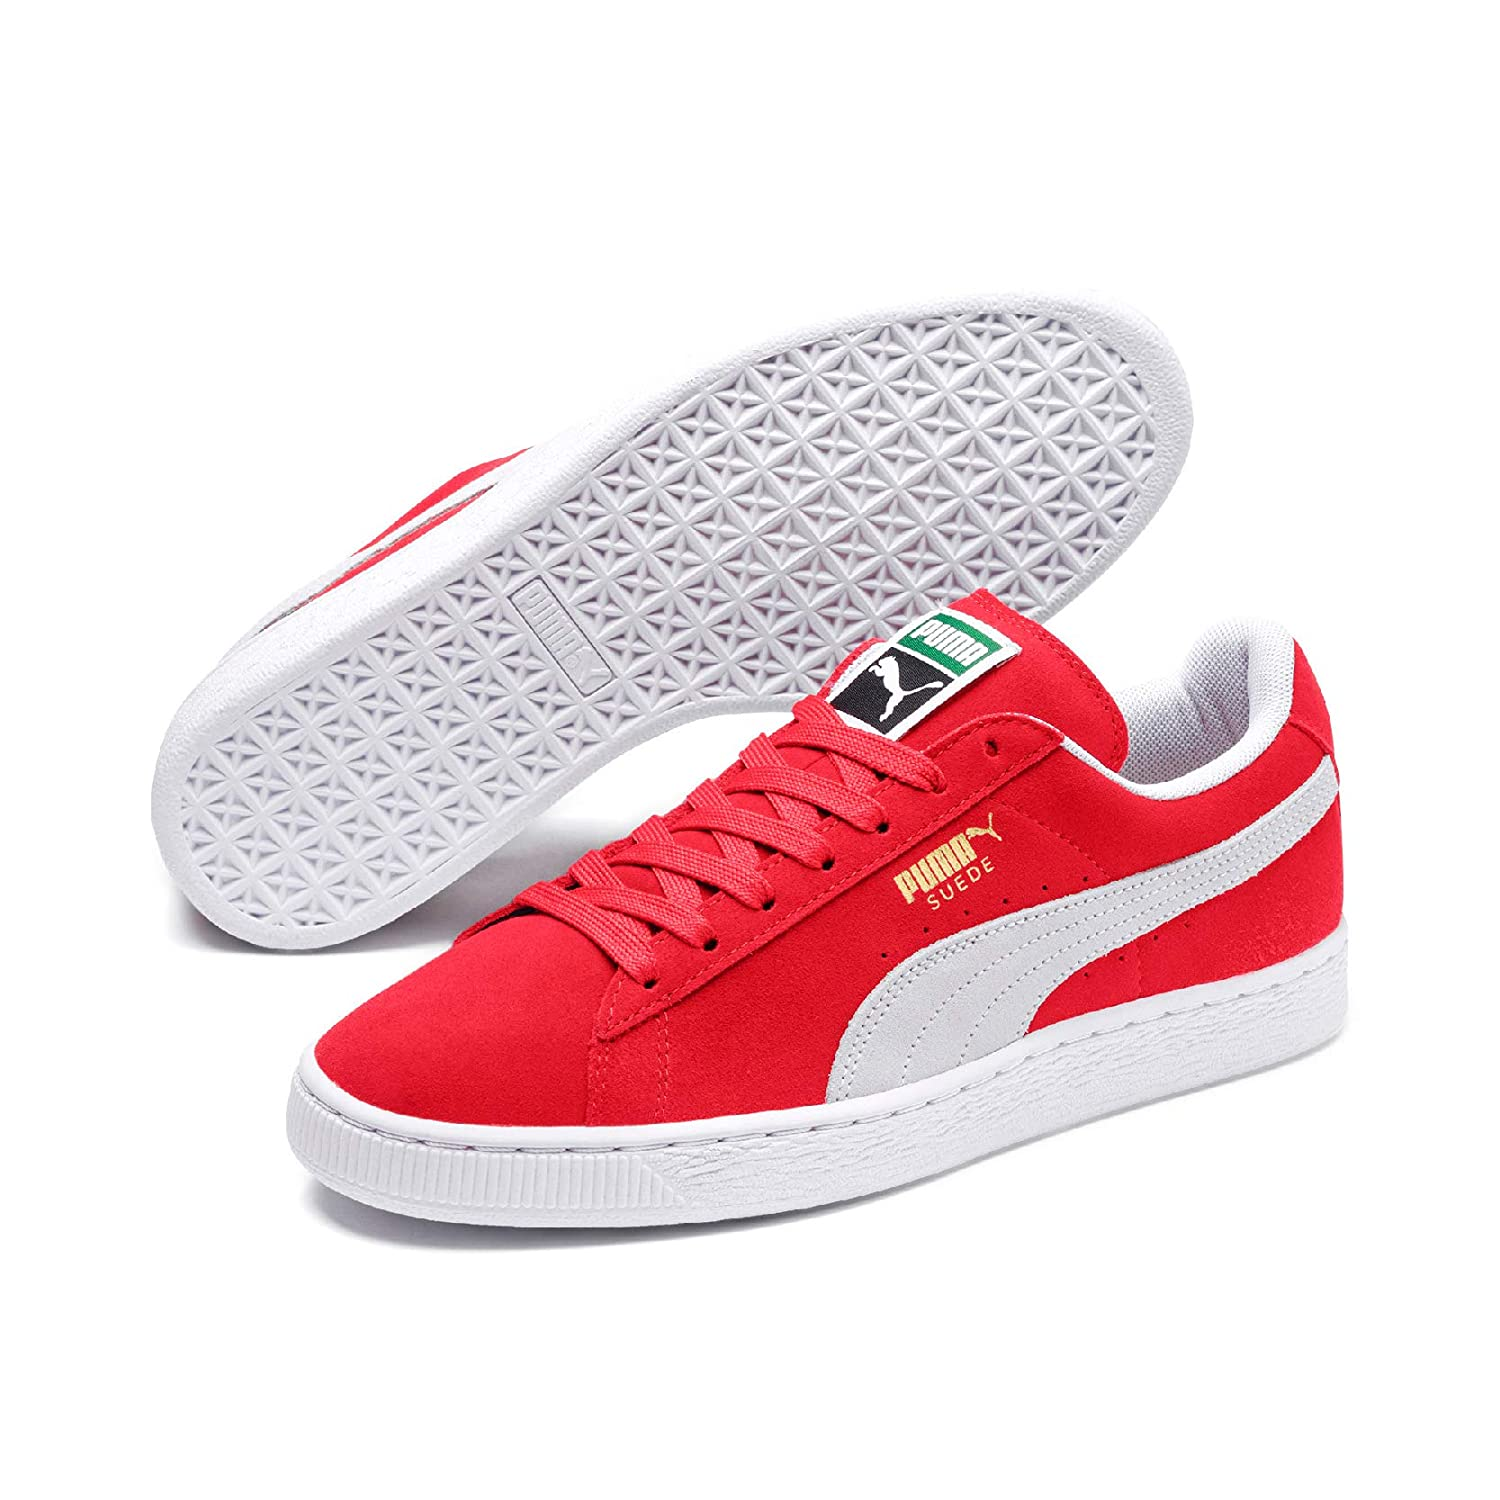 uk availability e42f7 9c7ef Puma Suede Classic+, Unisex Adults Low-Top Trainers, Red (Red/White 05), 6  UK (39 EU)